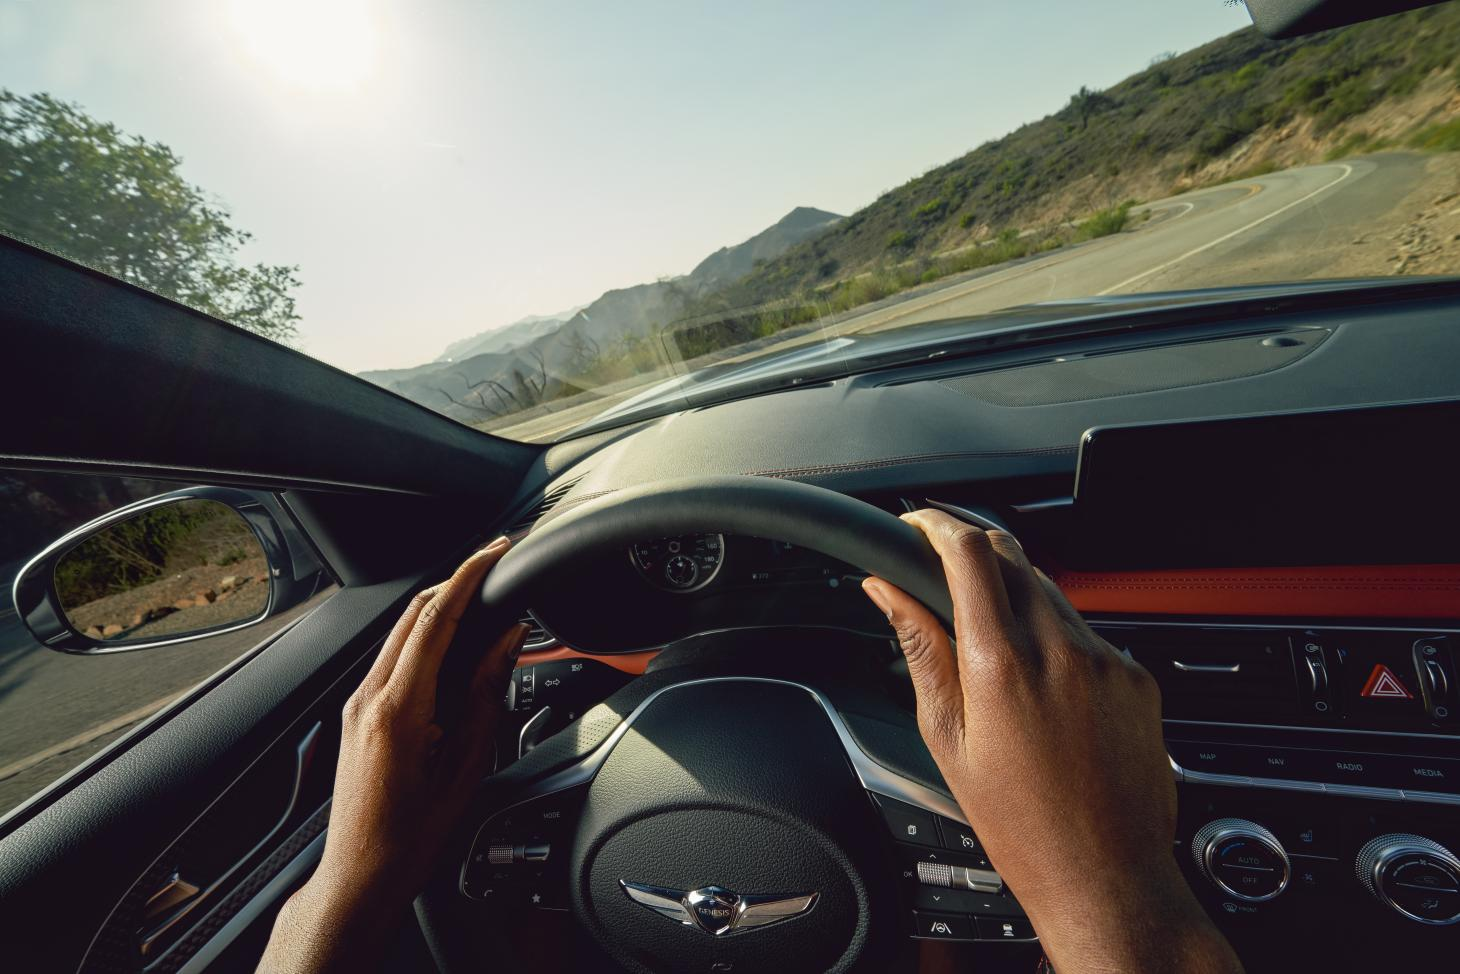 Genesis G70 car, interior image with driver's hands seen on steering wheel